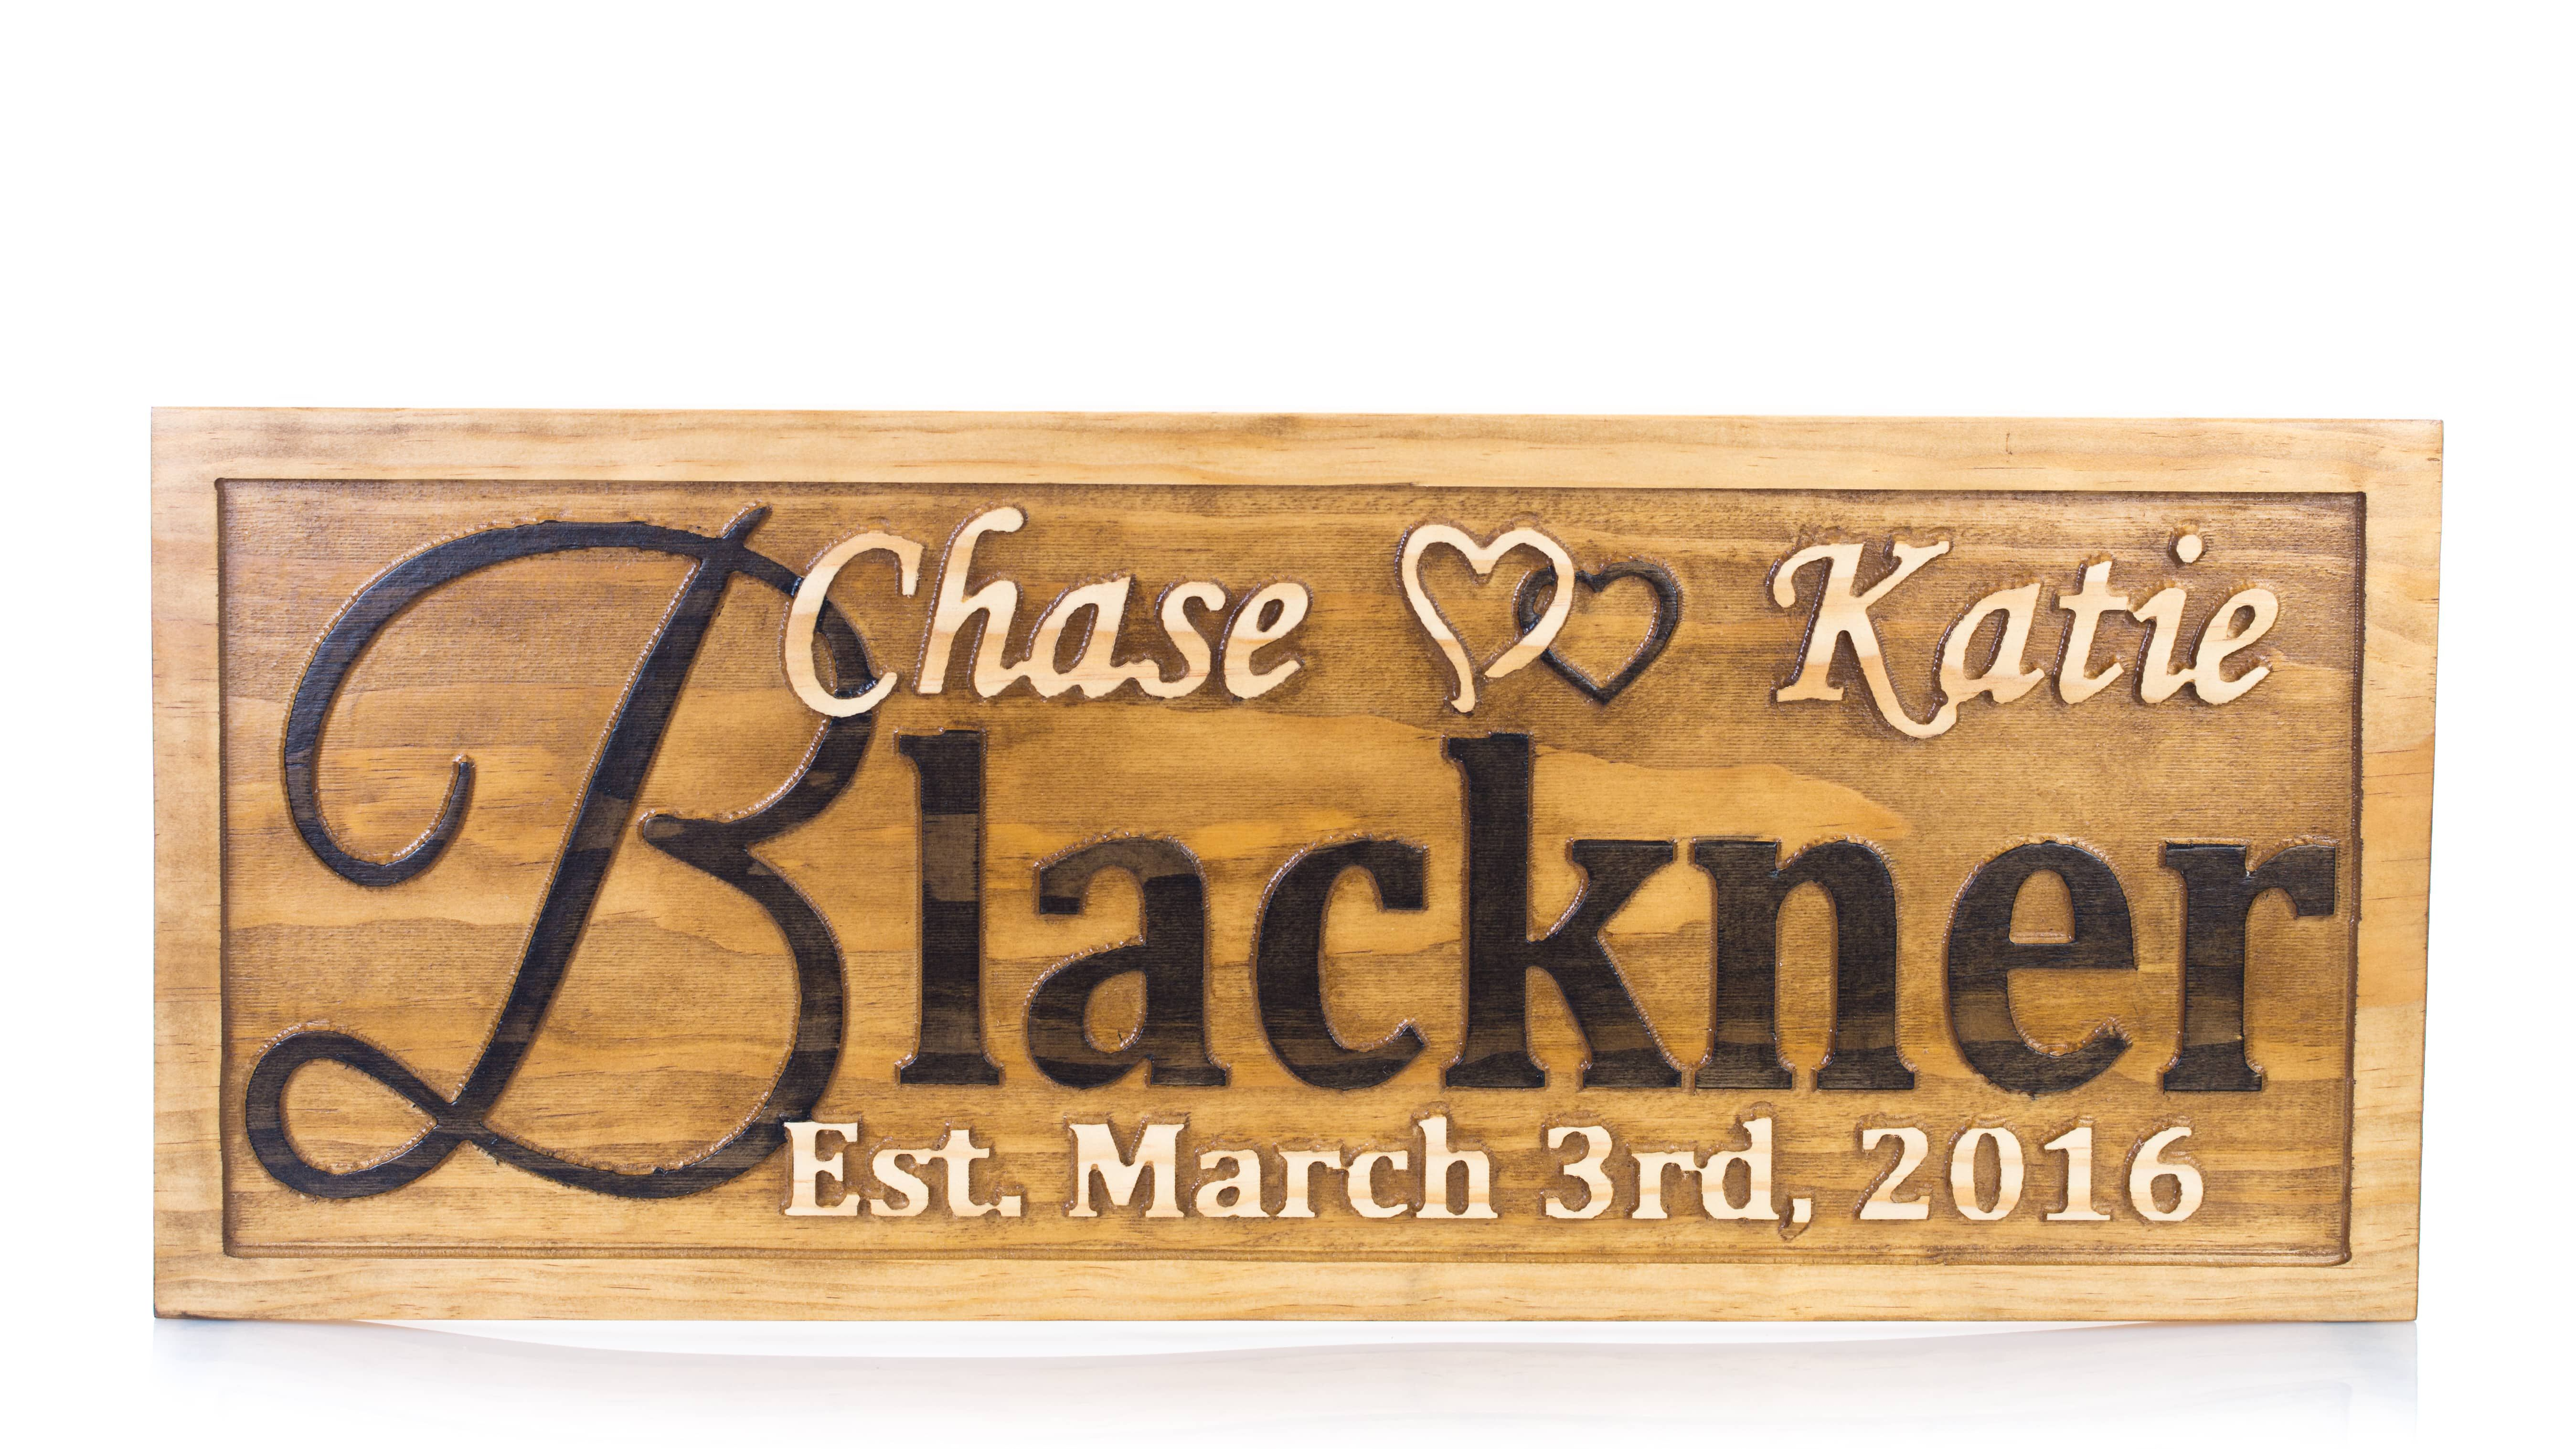 A Handmade Personalized Wedding Gift Family Name Sign Custom Carved Wooden Signs Anniversary Wood Plaque Made To Order From Can Creations Llc